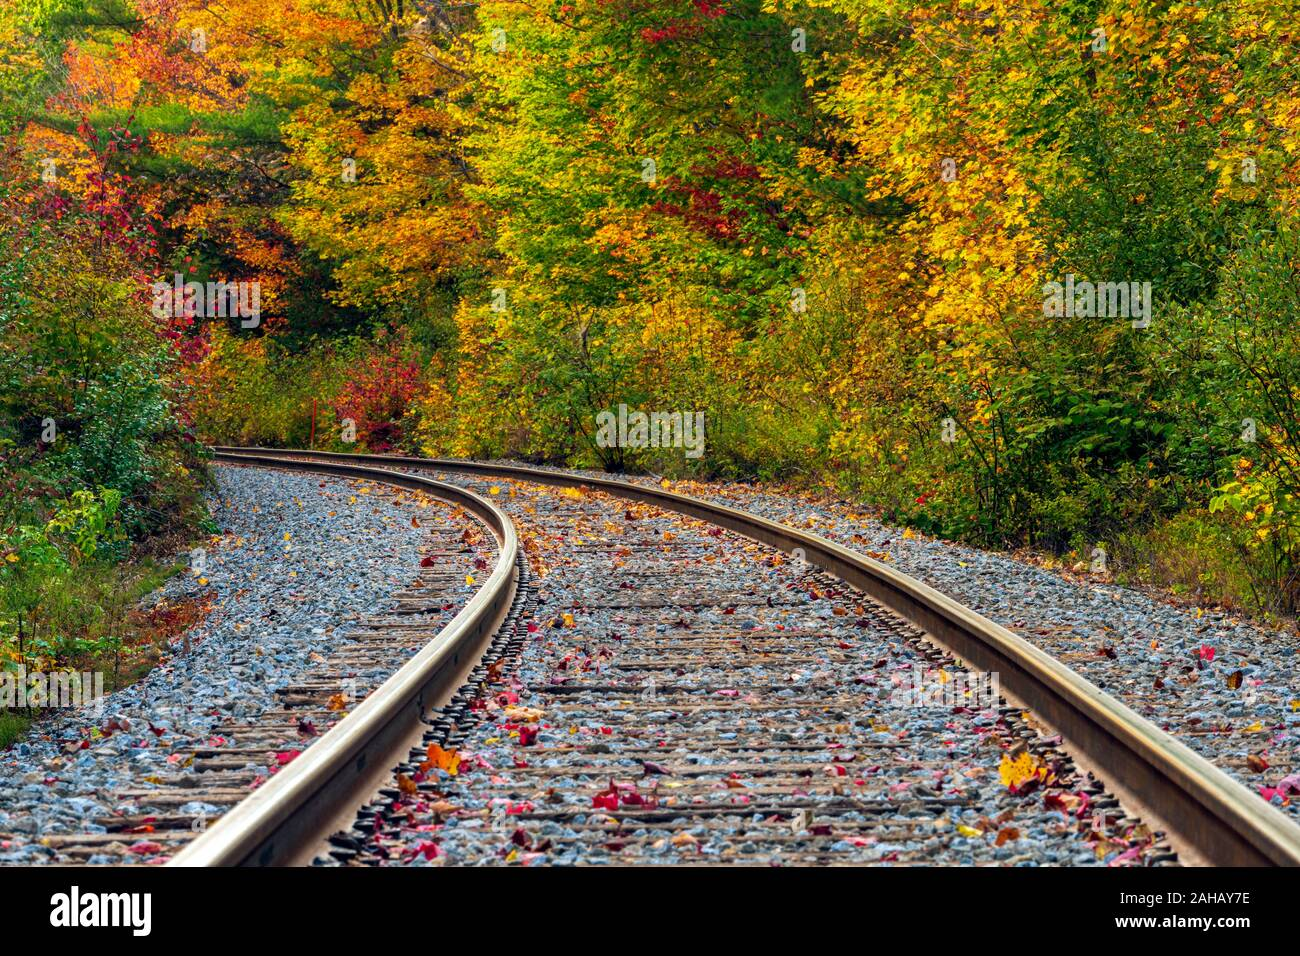 A long bend in the railway tracks leads into the forest displaying colorful autumn leaves. Stock Photo